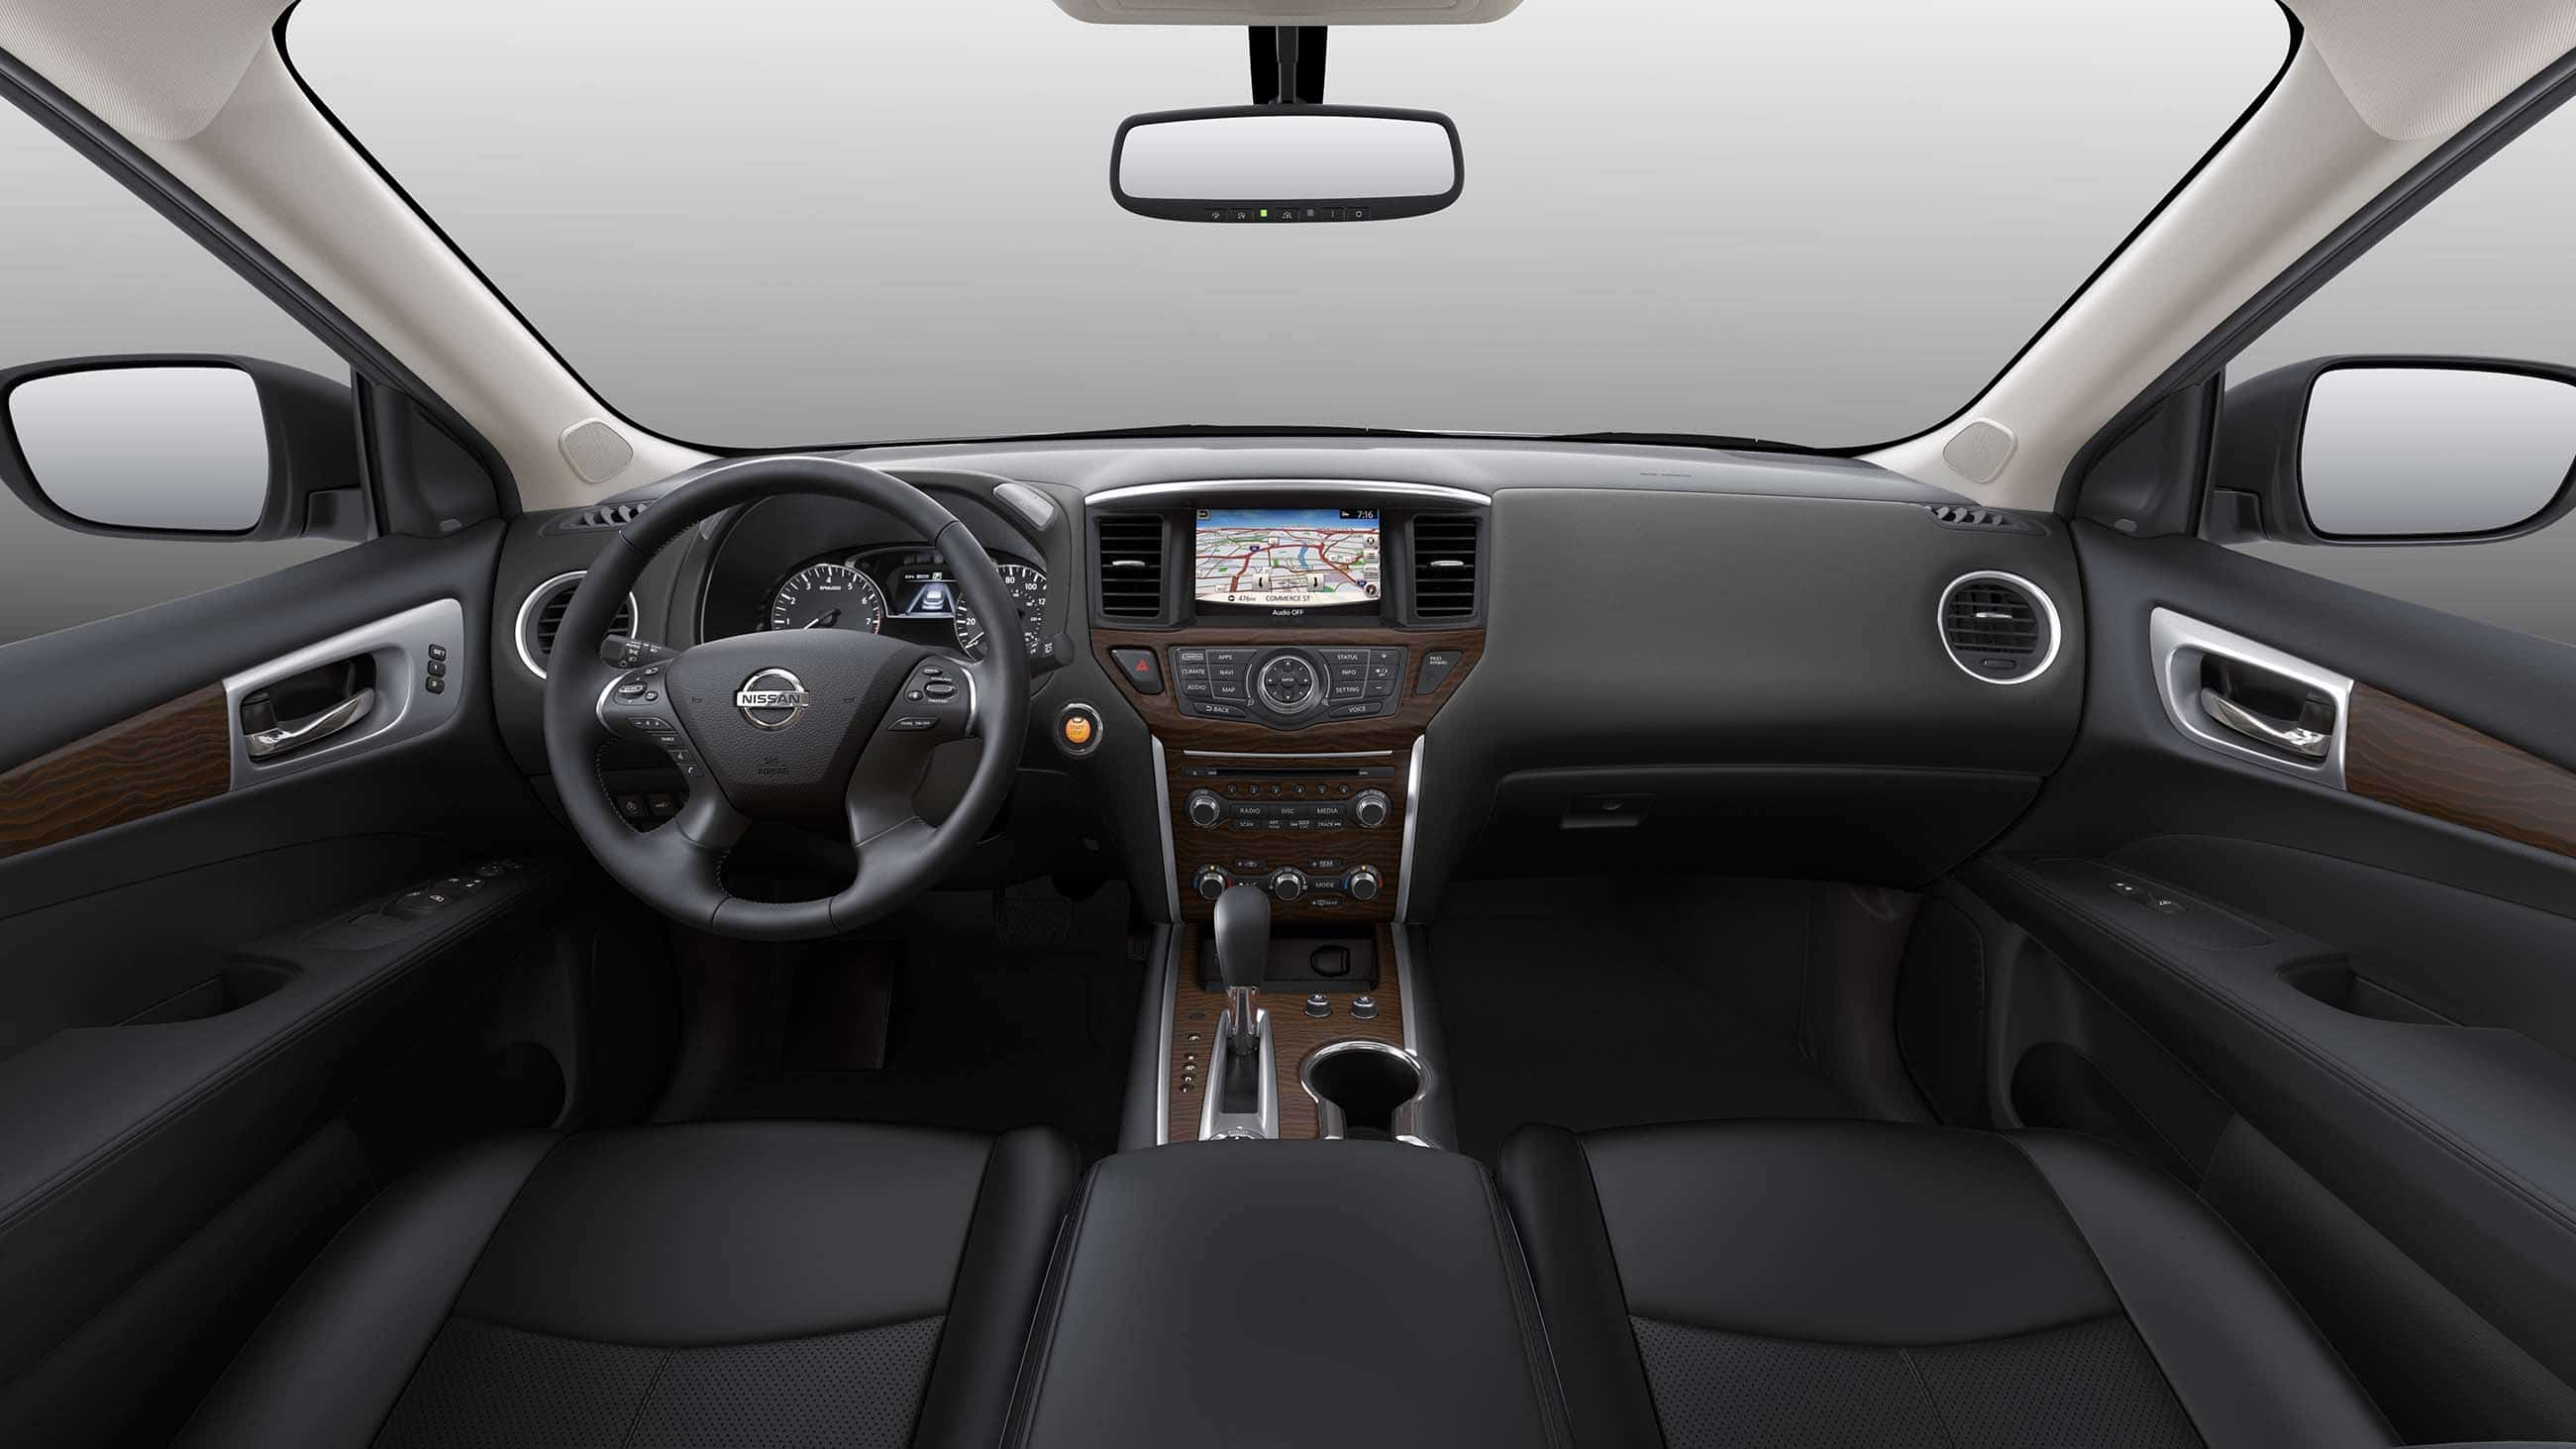 2020 Toyota Chr Interior Youtube | 2020 - 2018 Best Cars Reviews